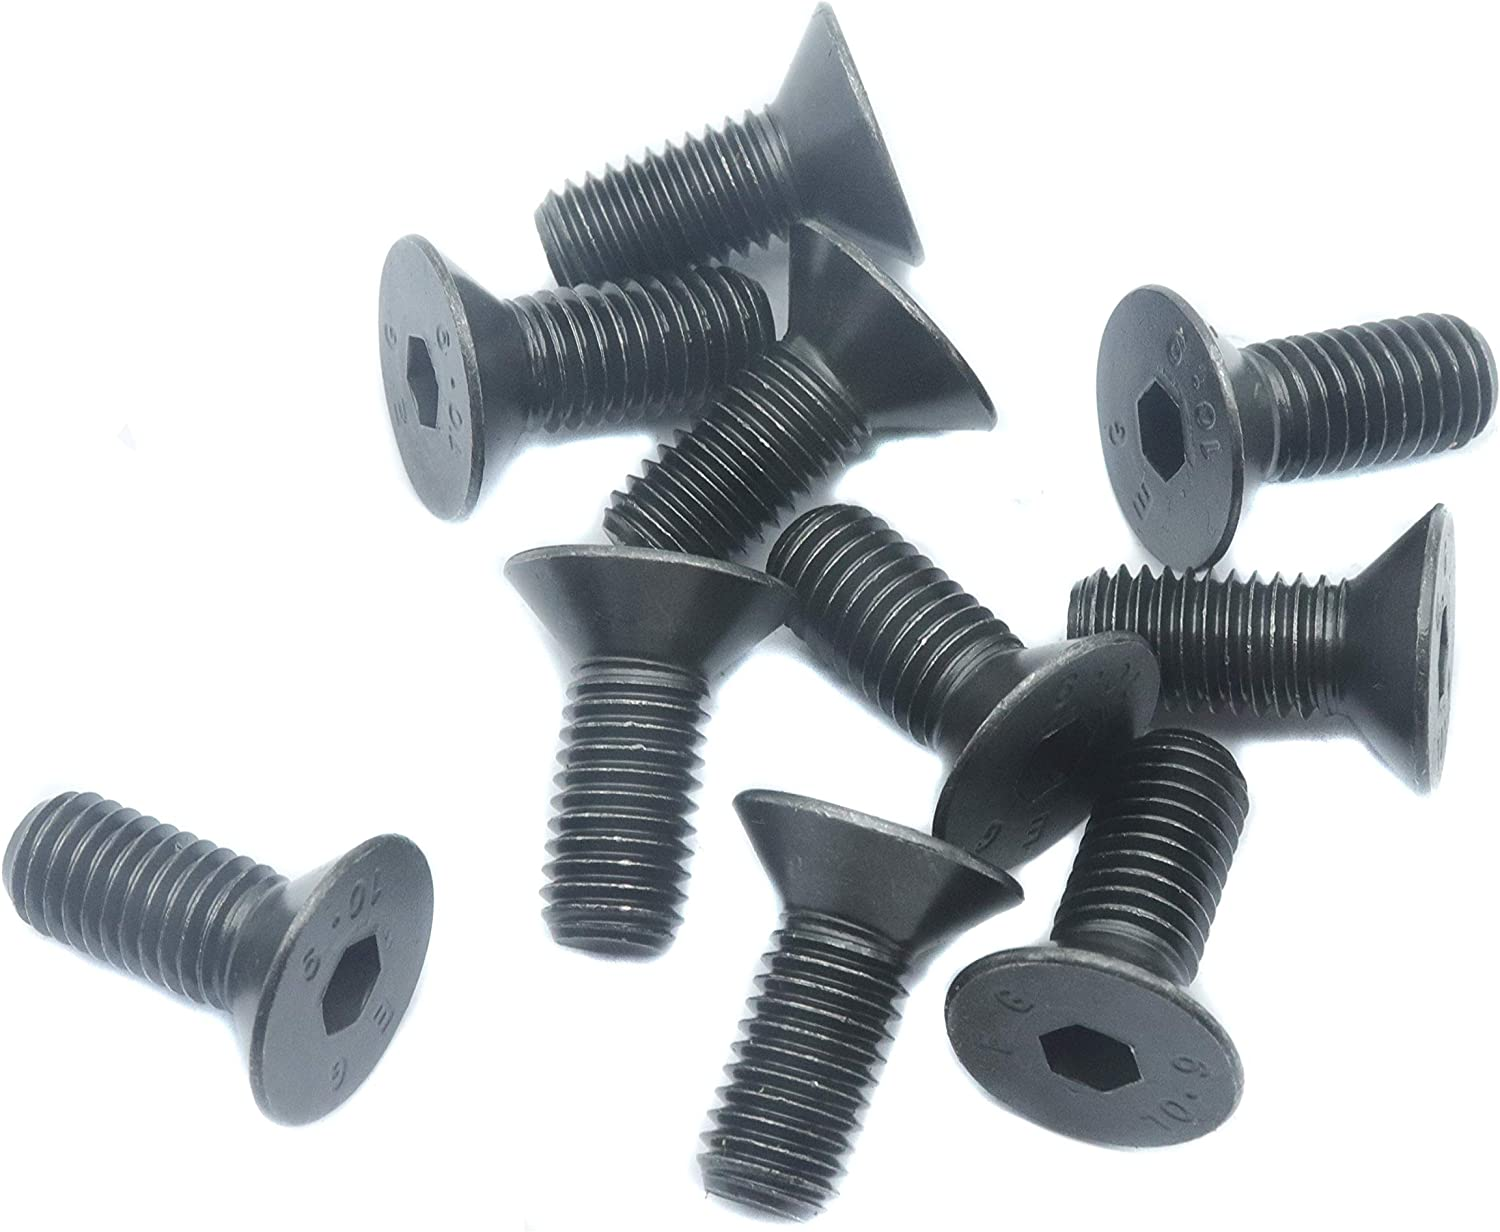 binifiMux 10pcs M10 Black Flat Hex Socekt Cap Bolts 10.9 Grade Alloy Steel M10x25mm